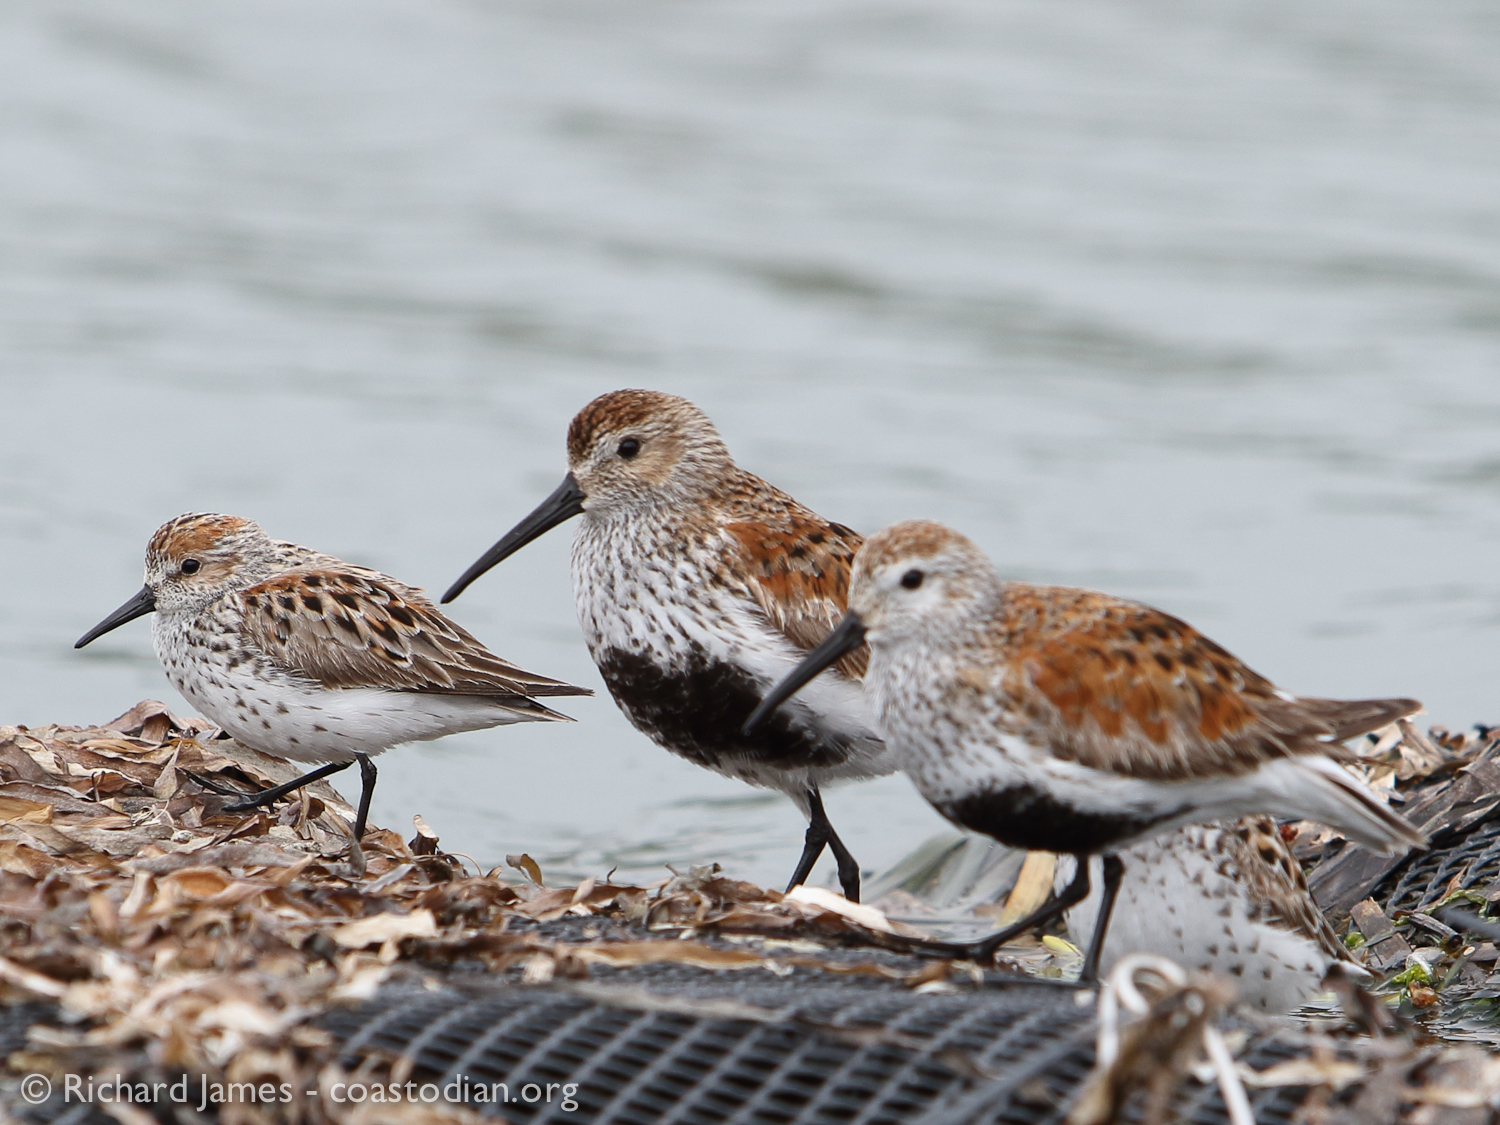 Two Western Sandpipers, Two Dunlin  [black bellies] feasting atop plastic oyster bags in Tomales Bay. ©Richard James - coastodian.org